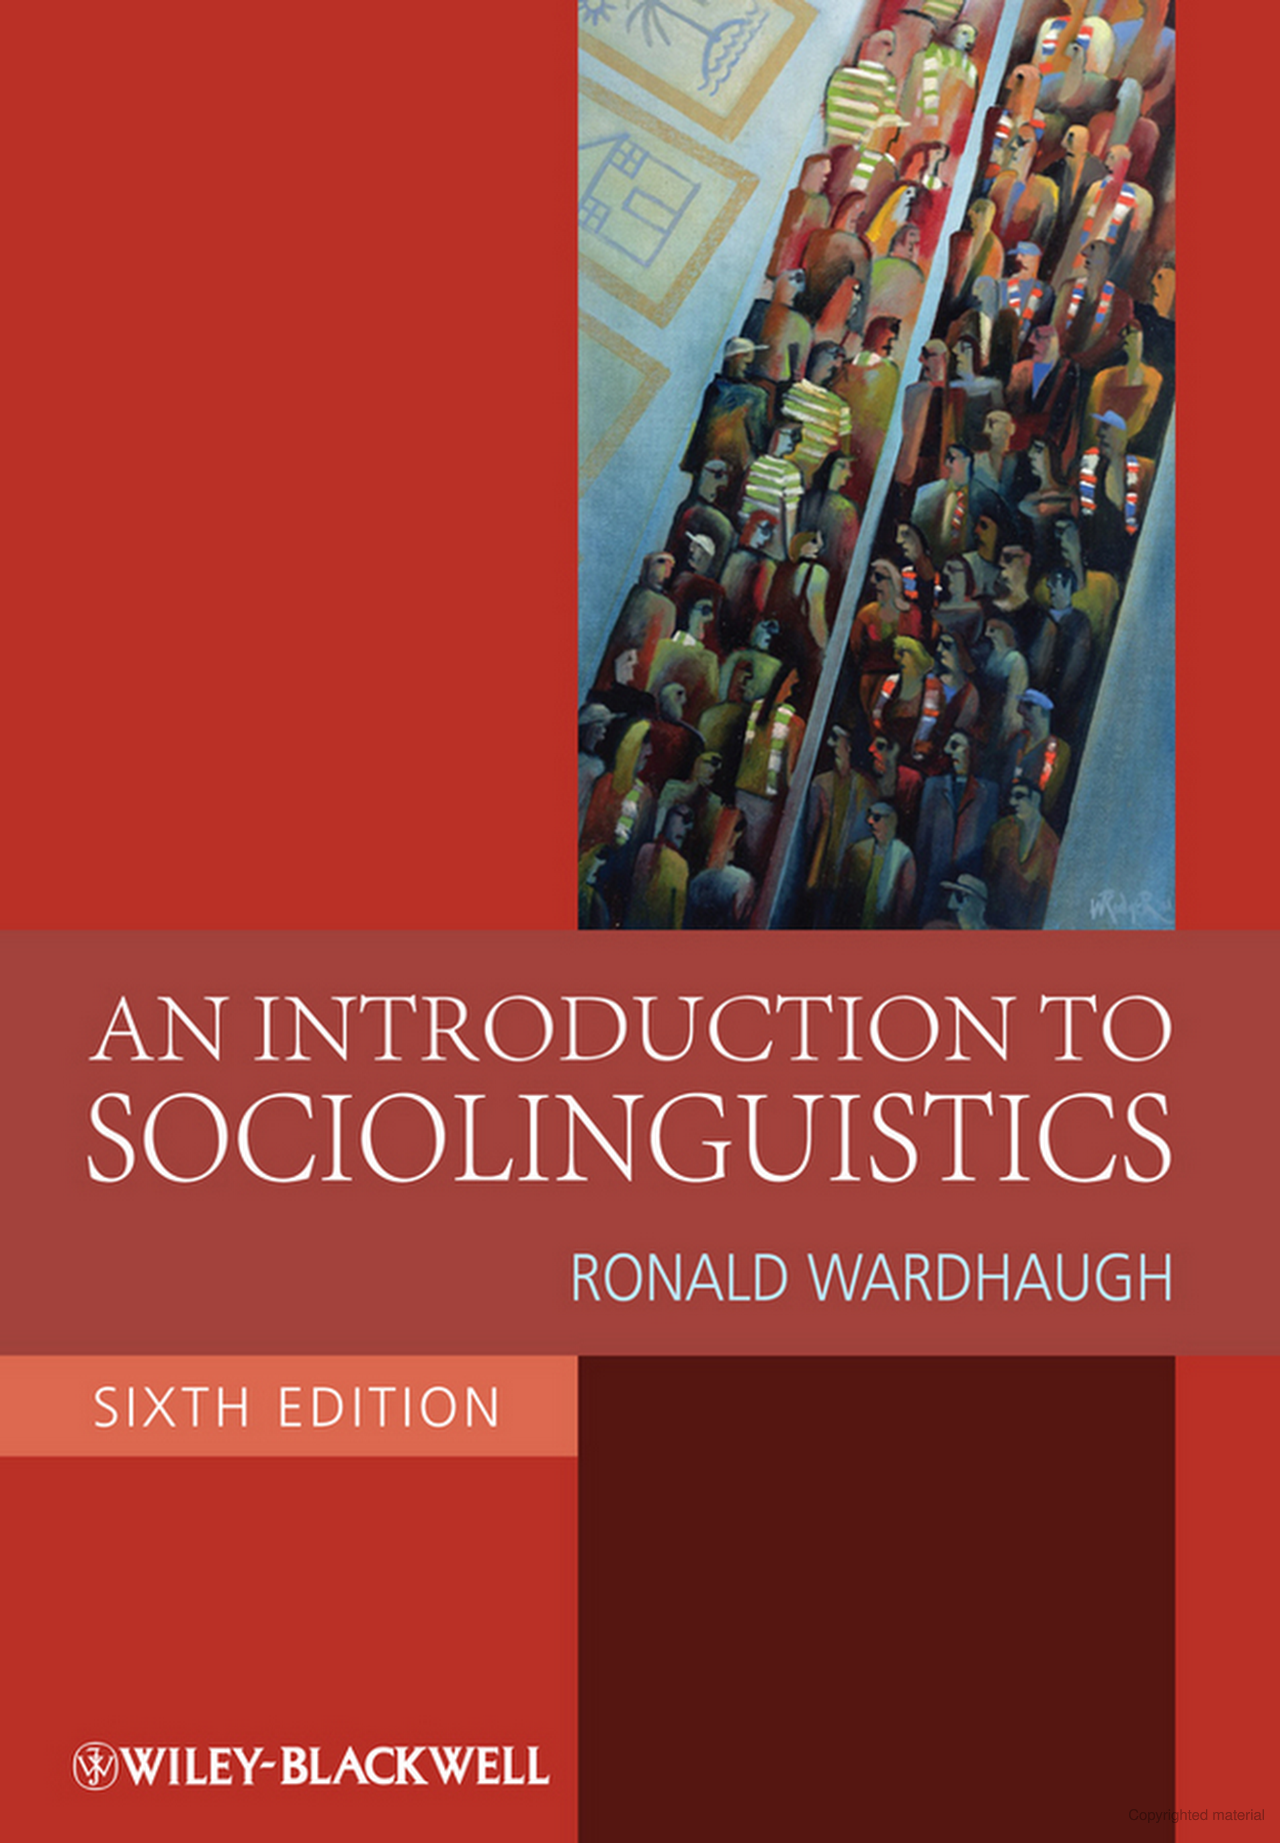 An Introduction to Sociolinguistics By Ronald Wardhaugh